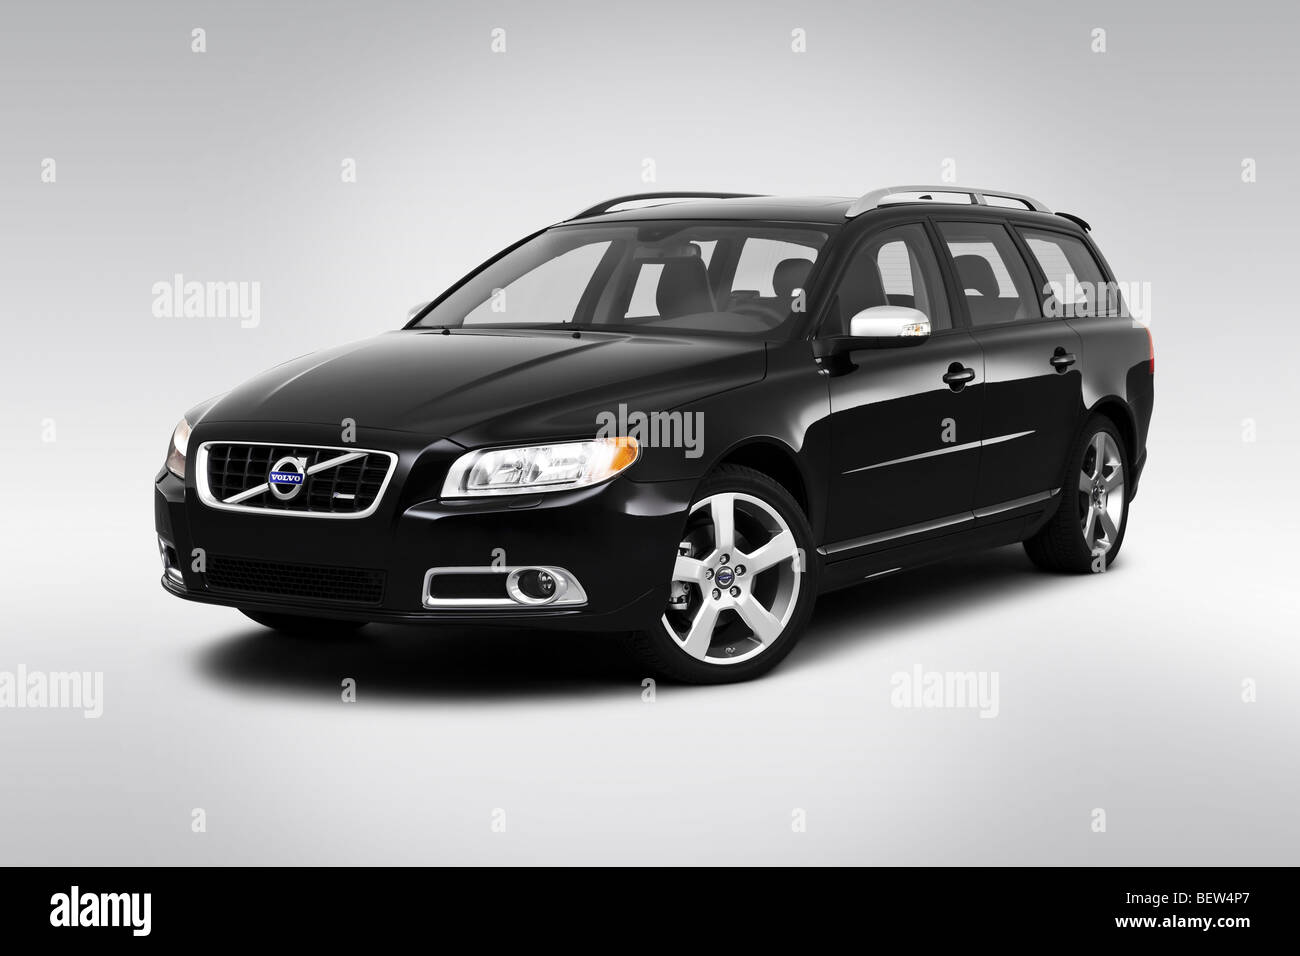 Volvo V A Sr In Black Front Angle View Stock Image